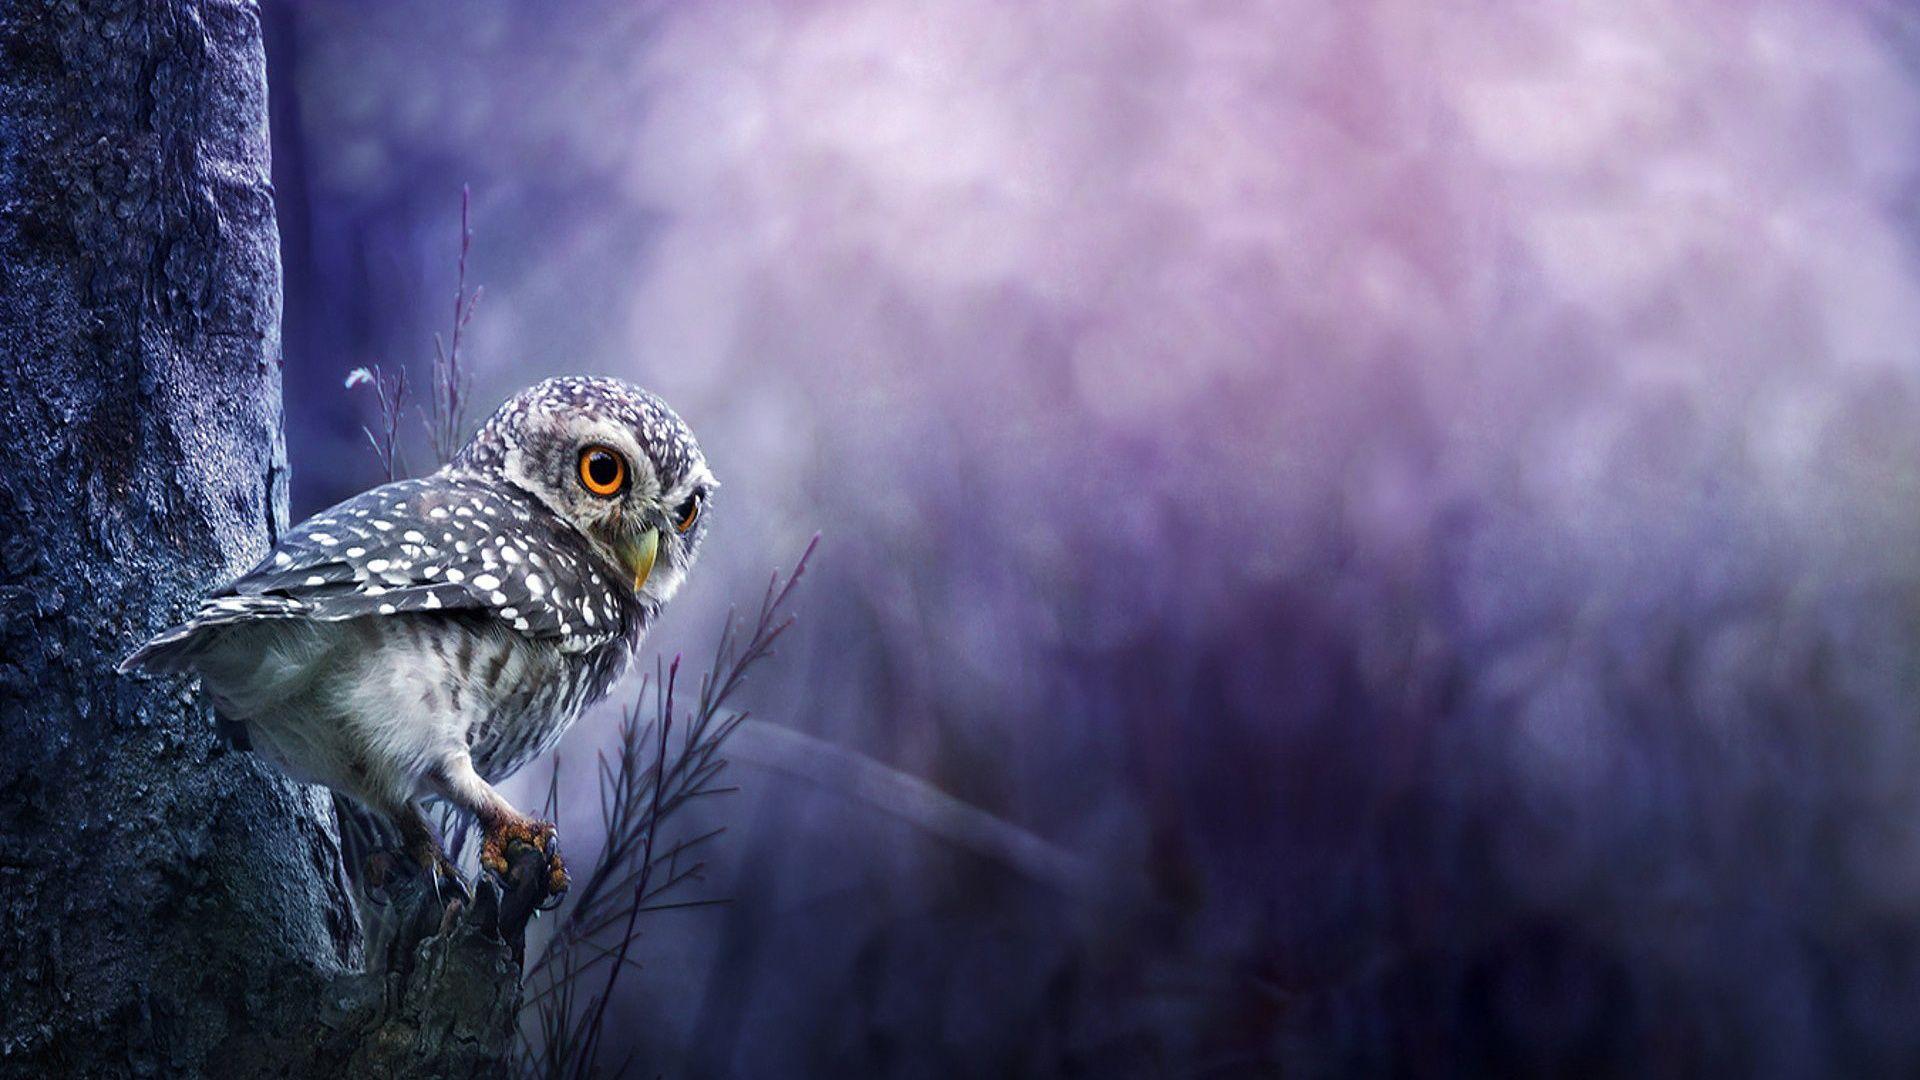 Baby Owls very cute baby owl hd wallpaper. child